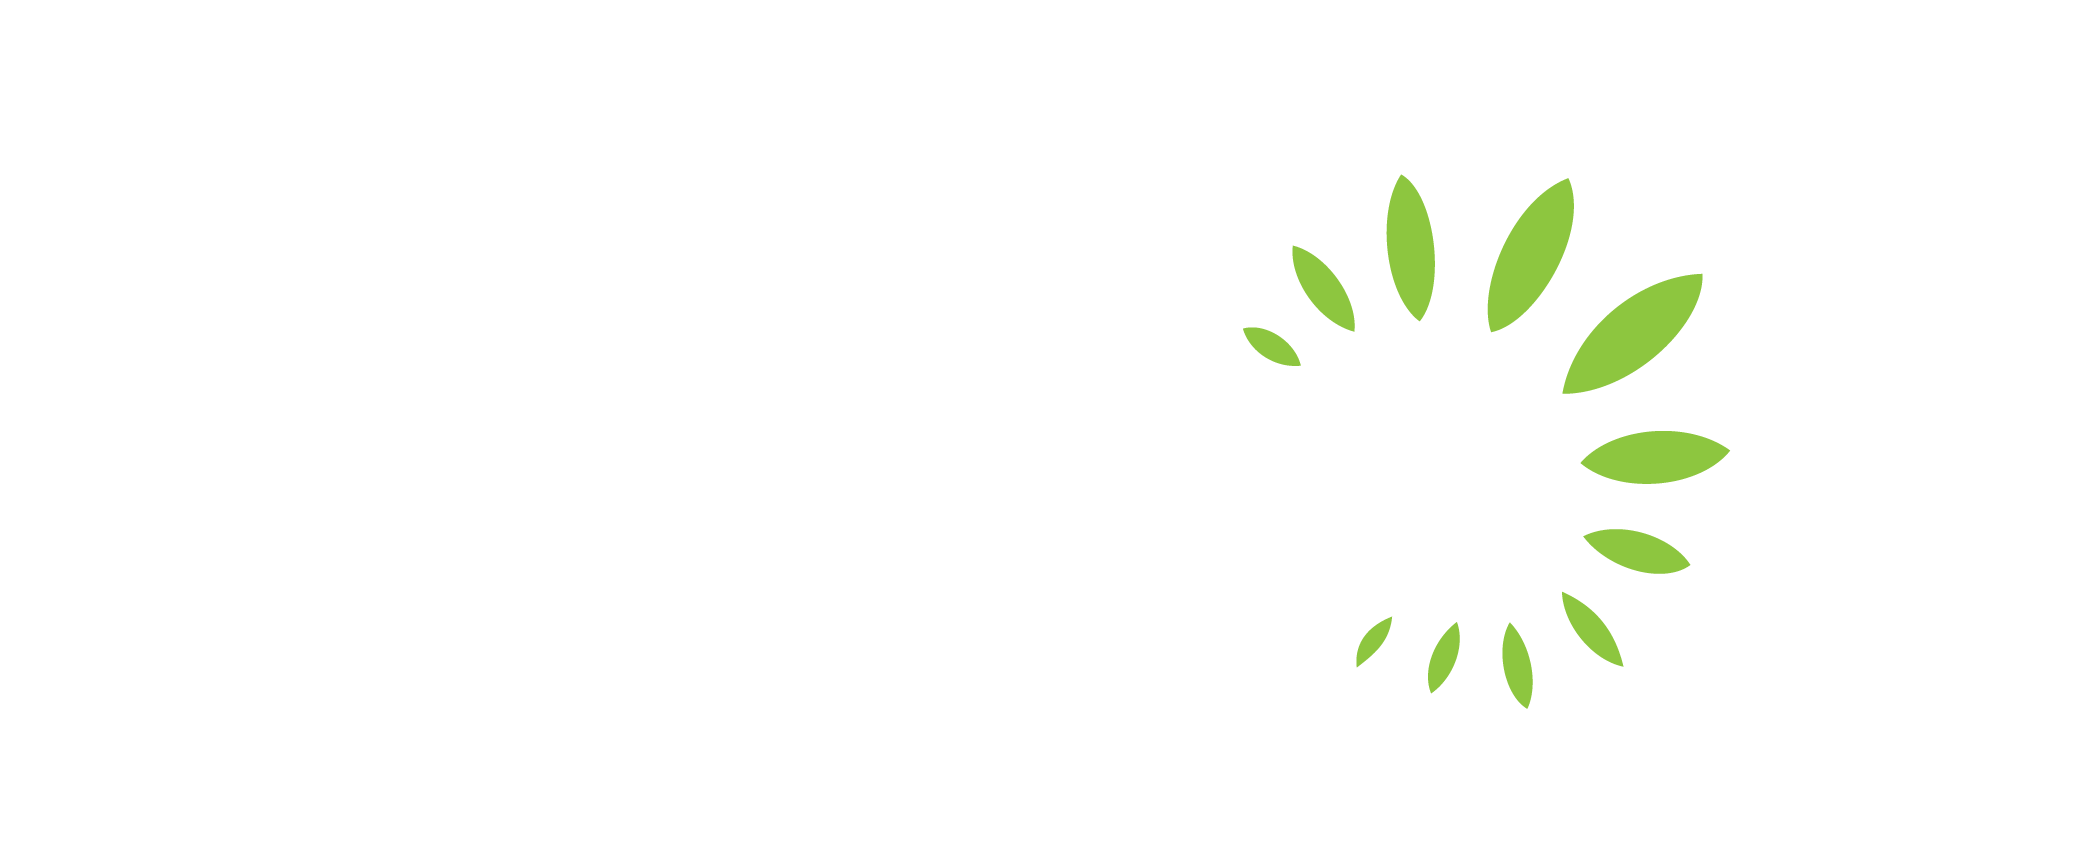 Westcountry Grounds Maintenance Ltd White _Space-01.png